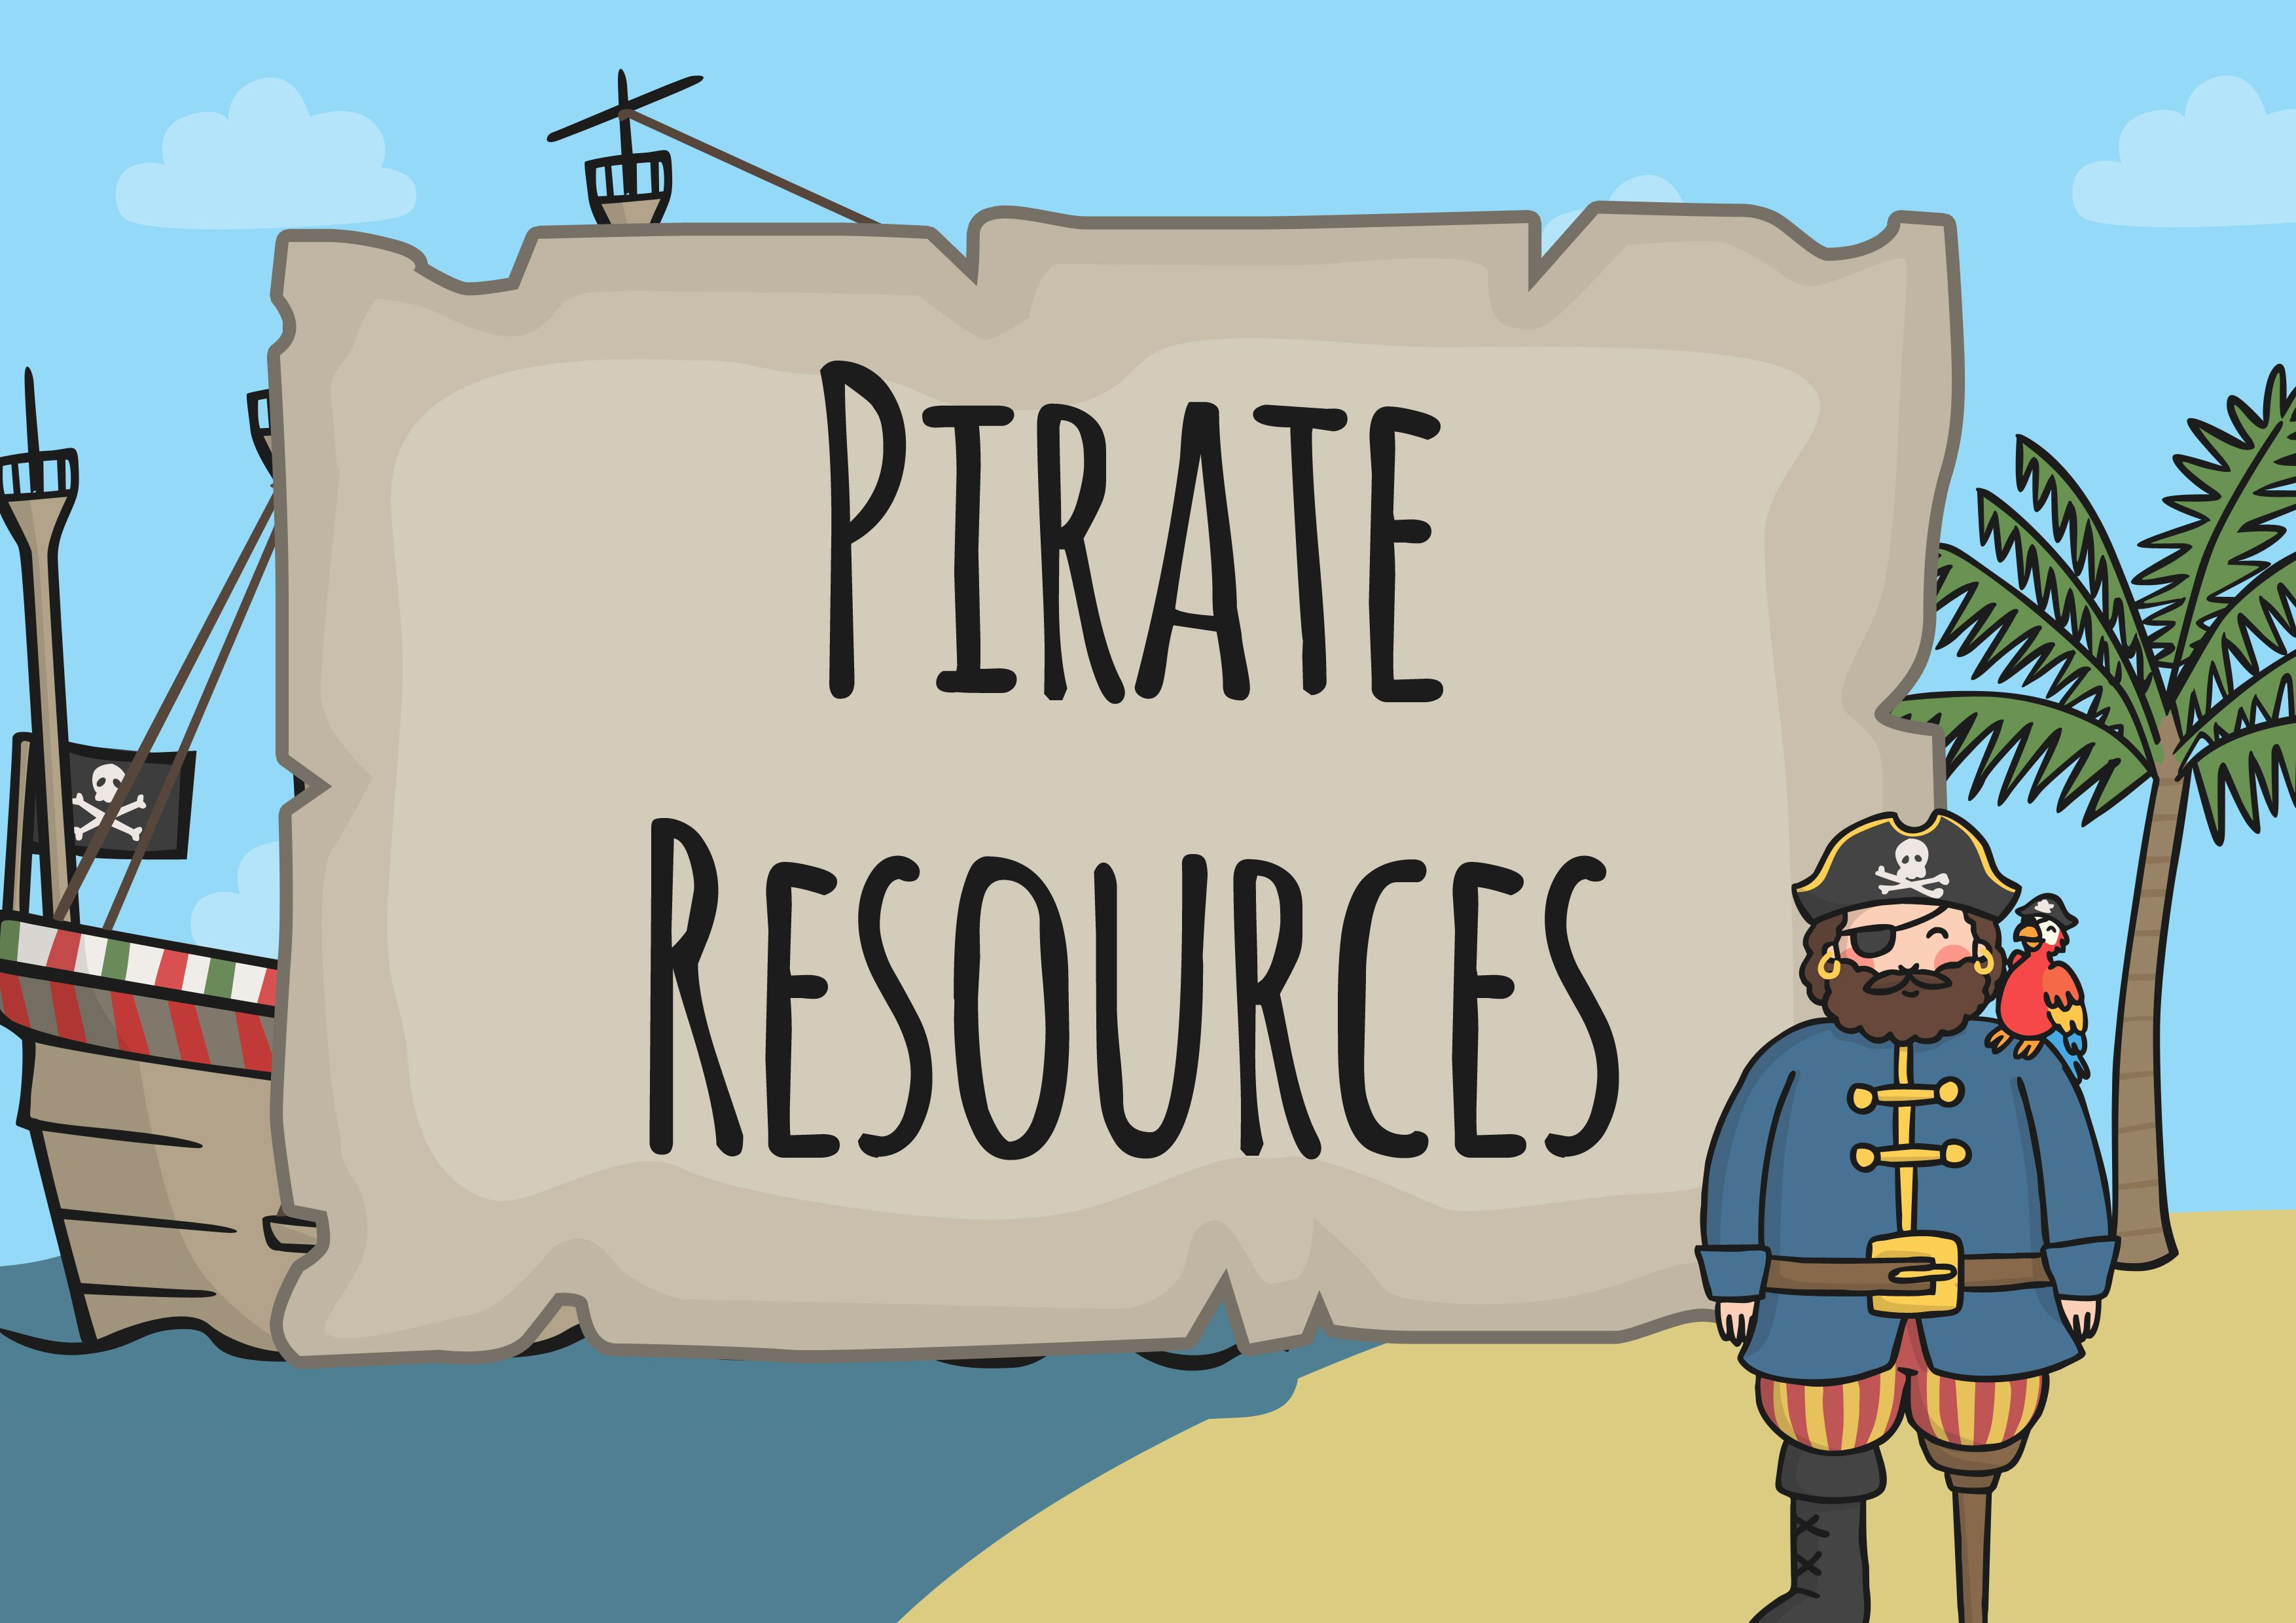 Pirate Resources